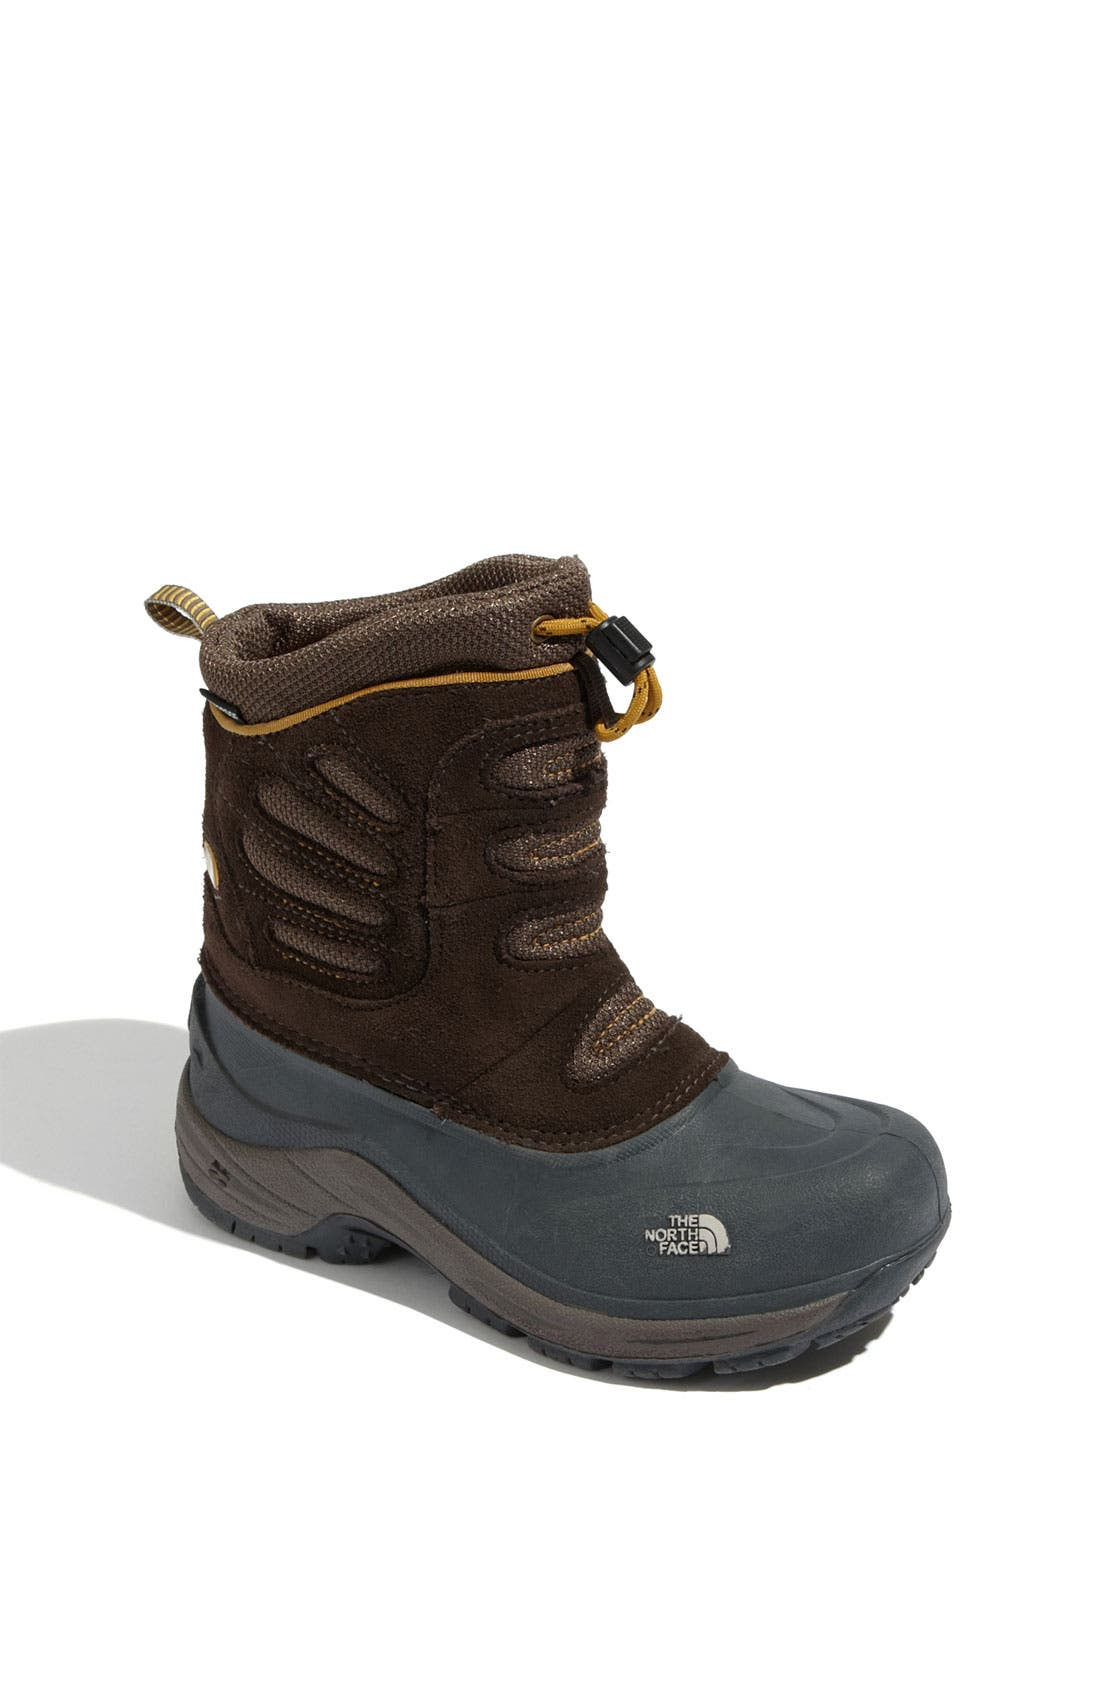 Alternate Image 1 Selected - The North Face 'Snow Plough' Boot (Little Kids & Big Kids)